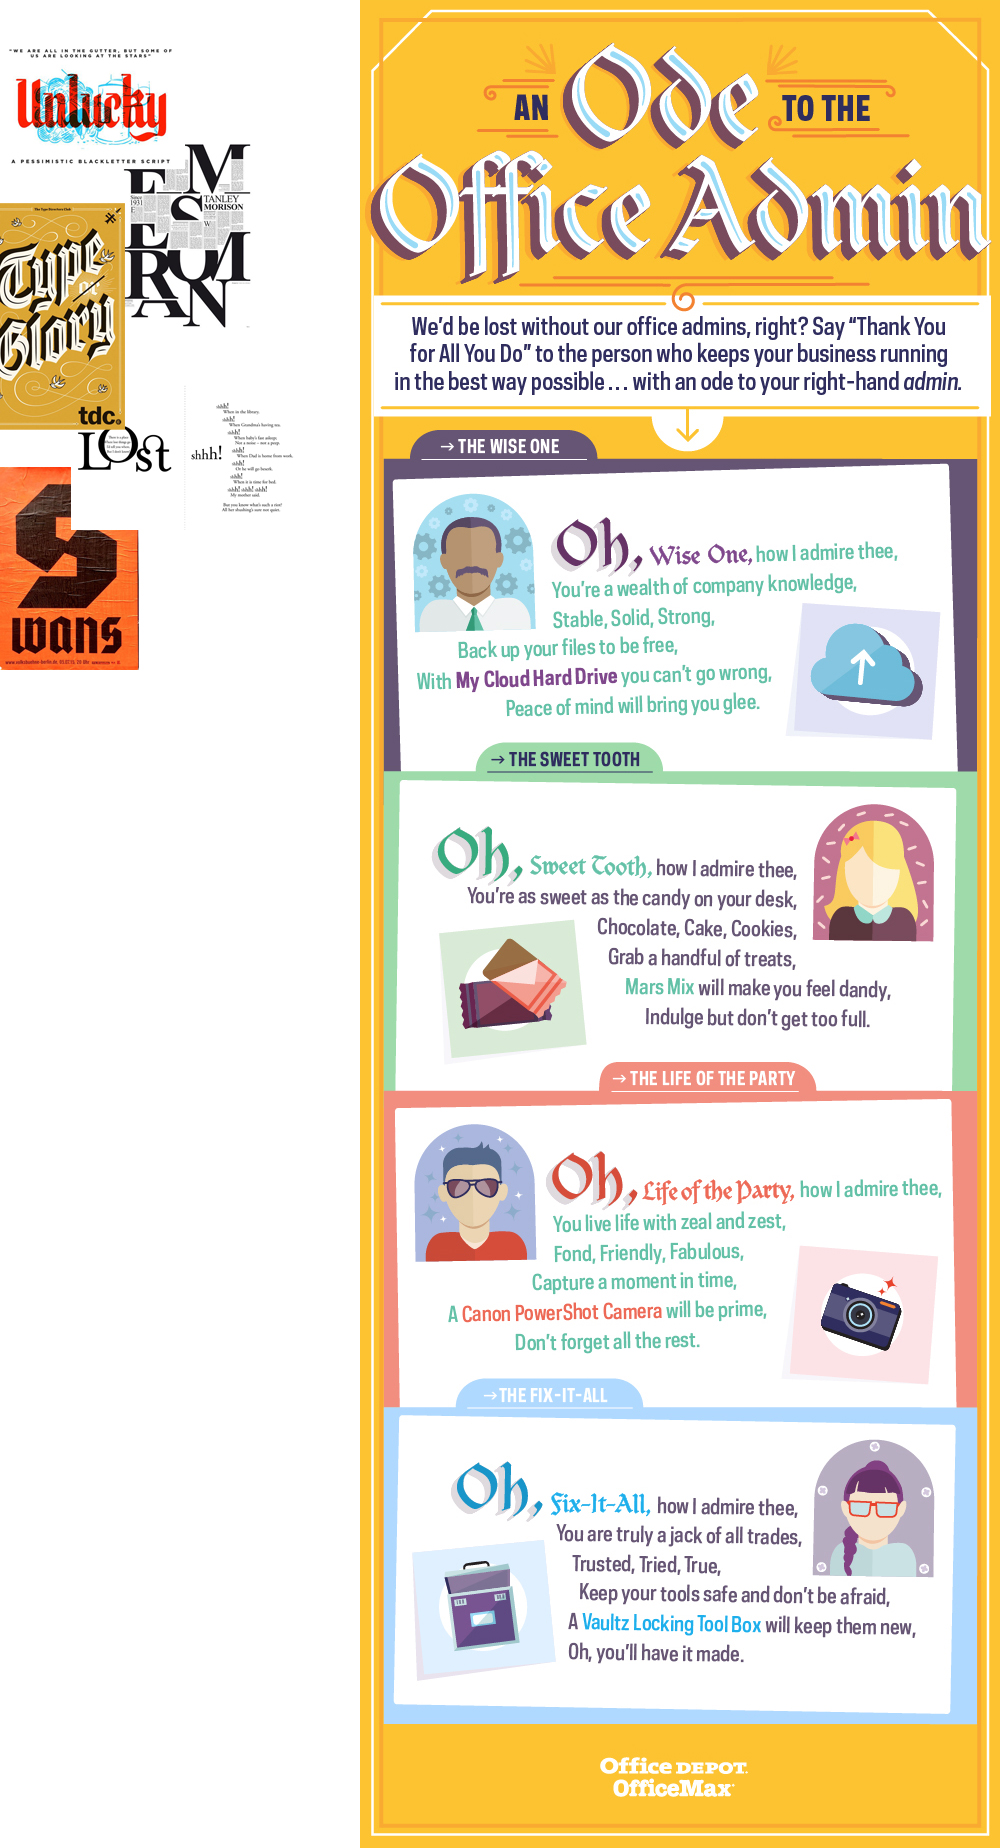 Office Depot: Ode to Admins infographic